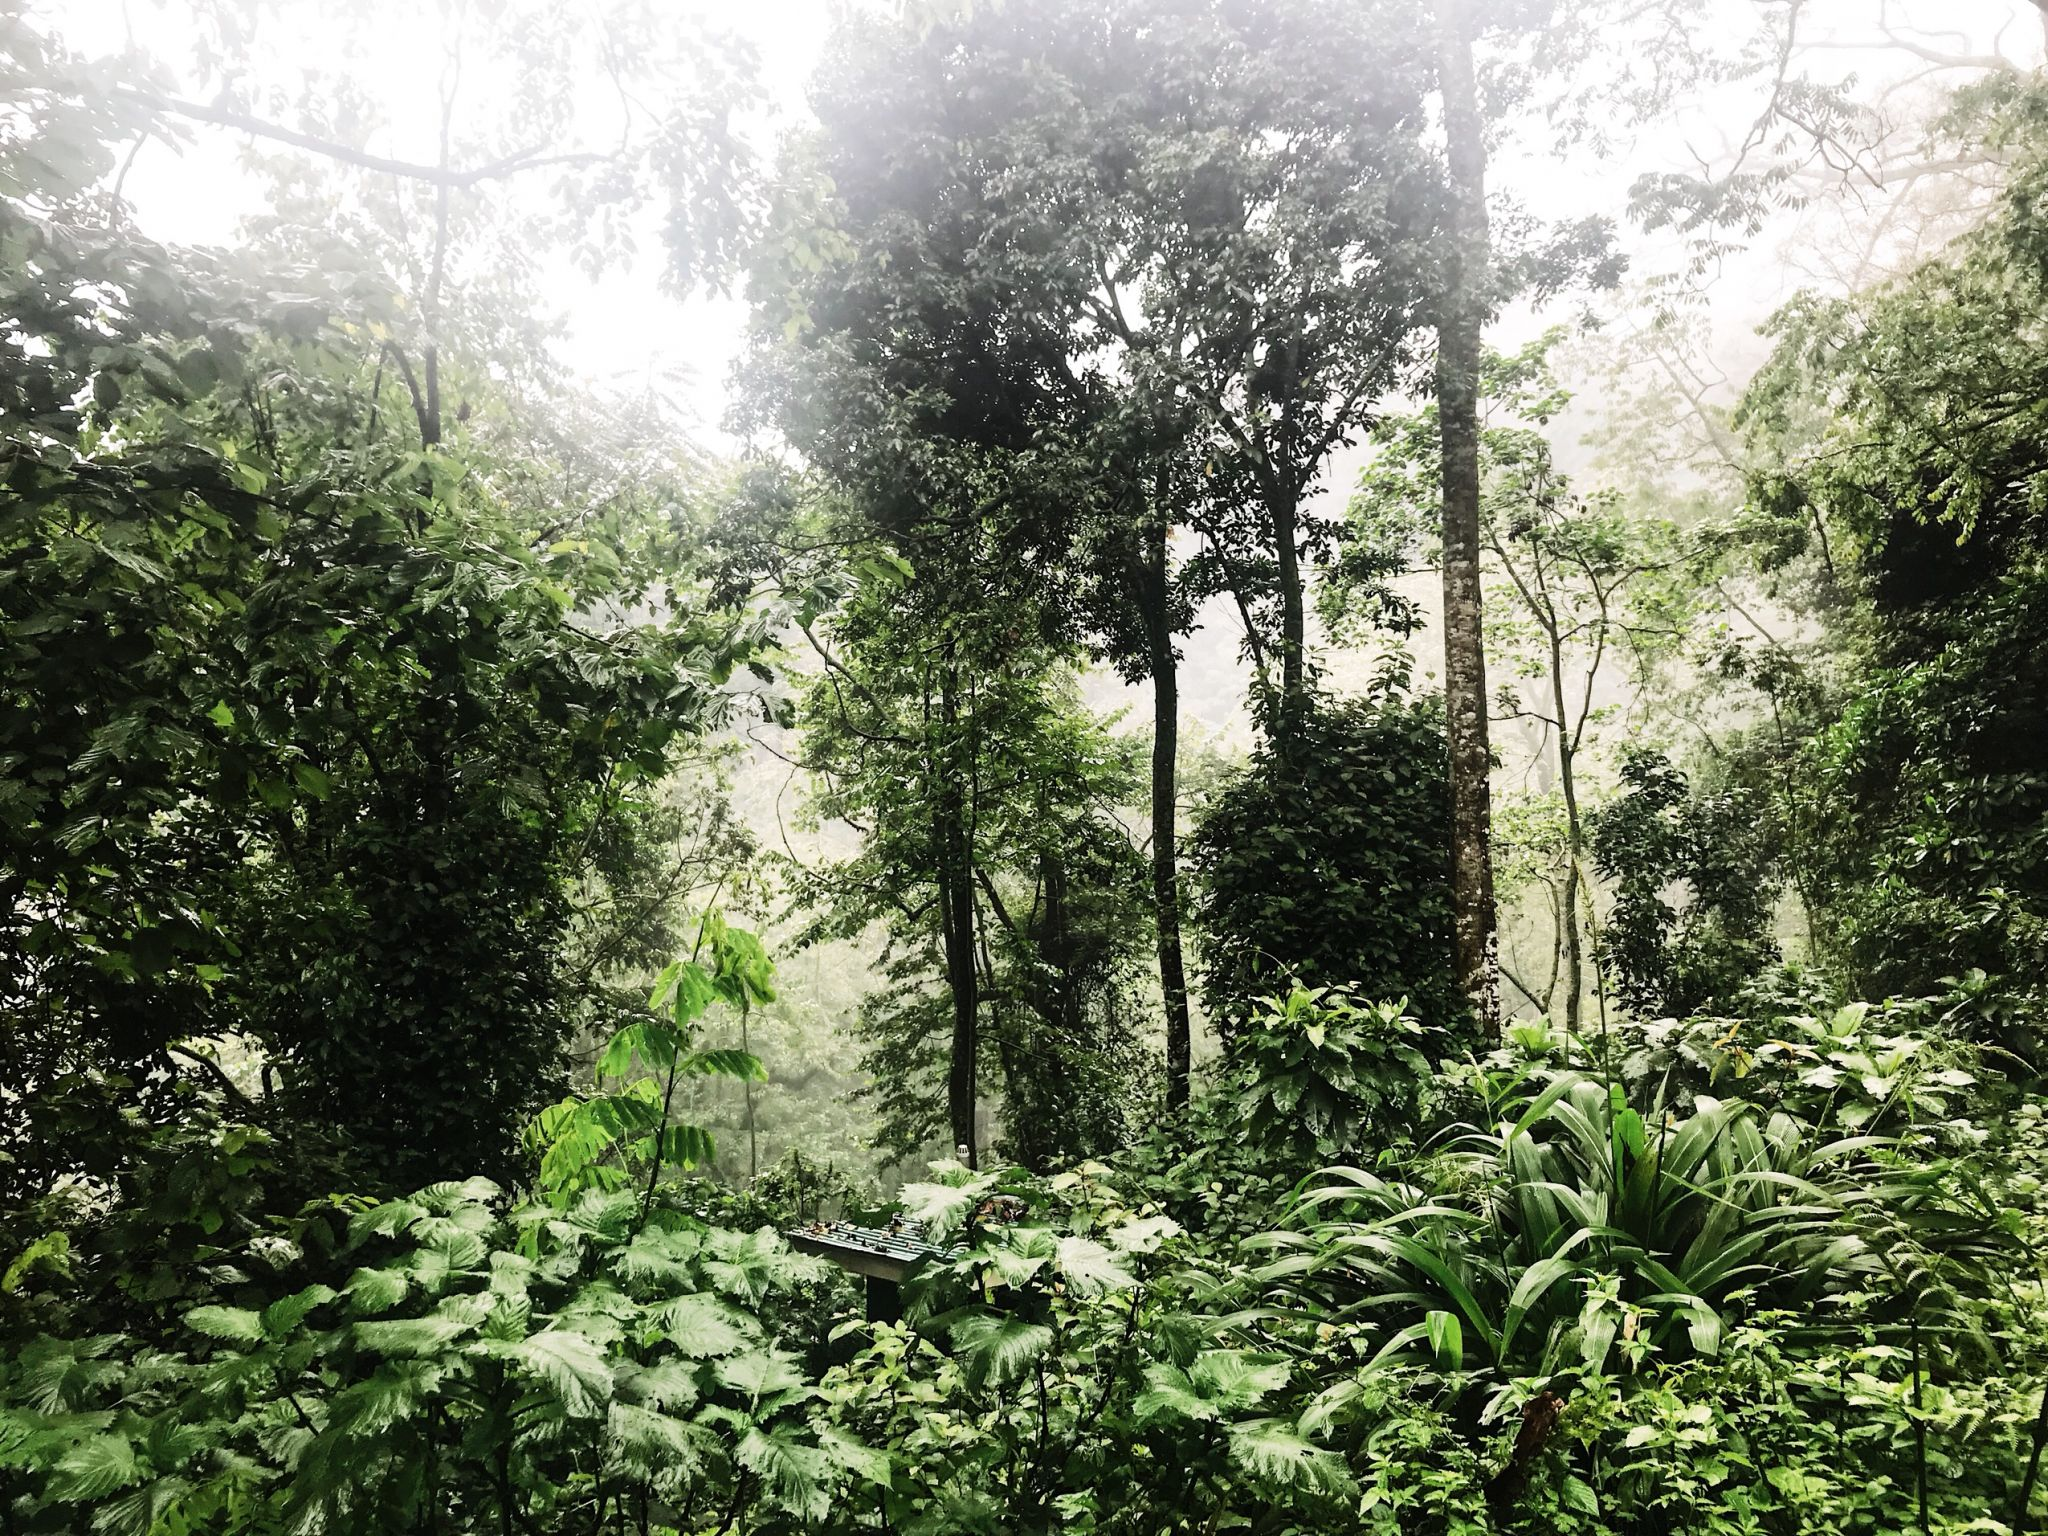 image of impenetrable forest hiked through when gorilla trekking in Uganda